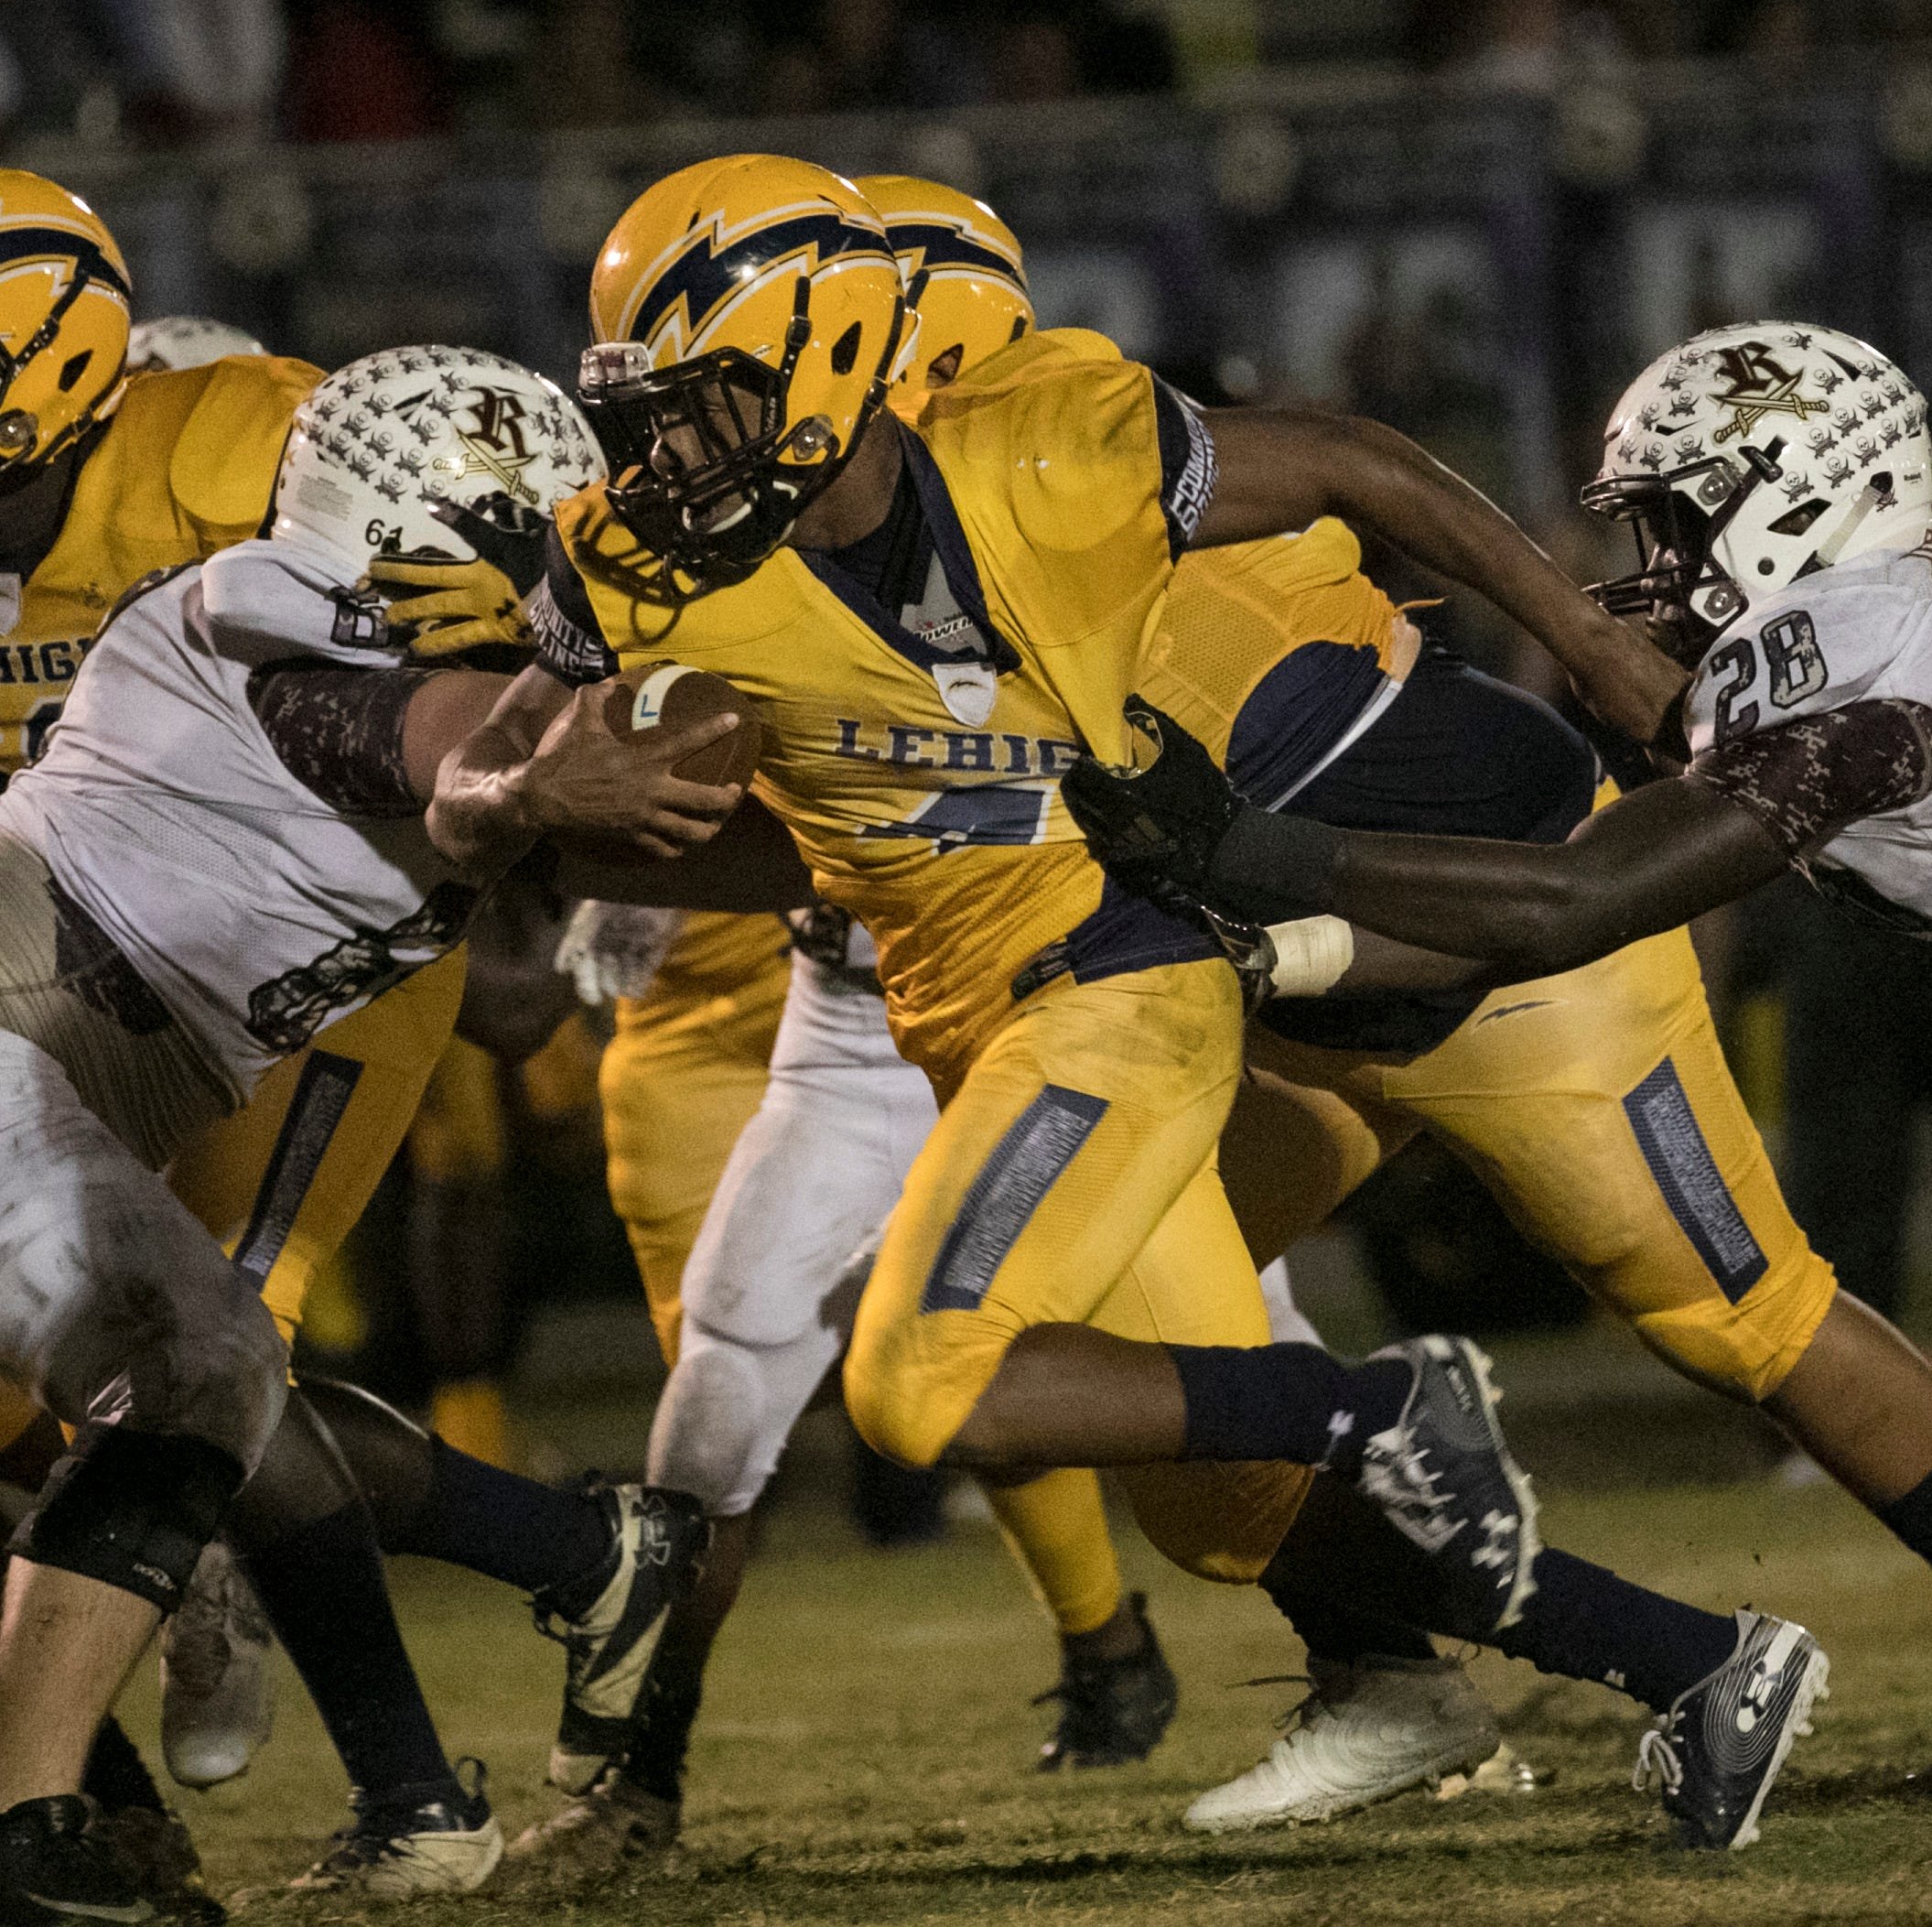 High school football: Top games to watch in 2019